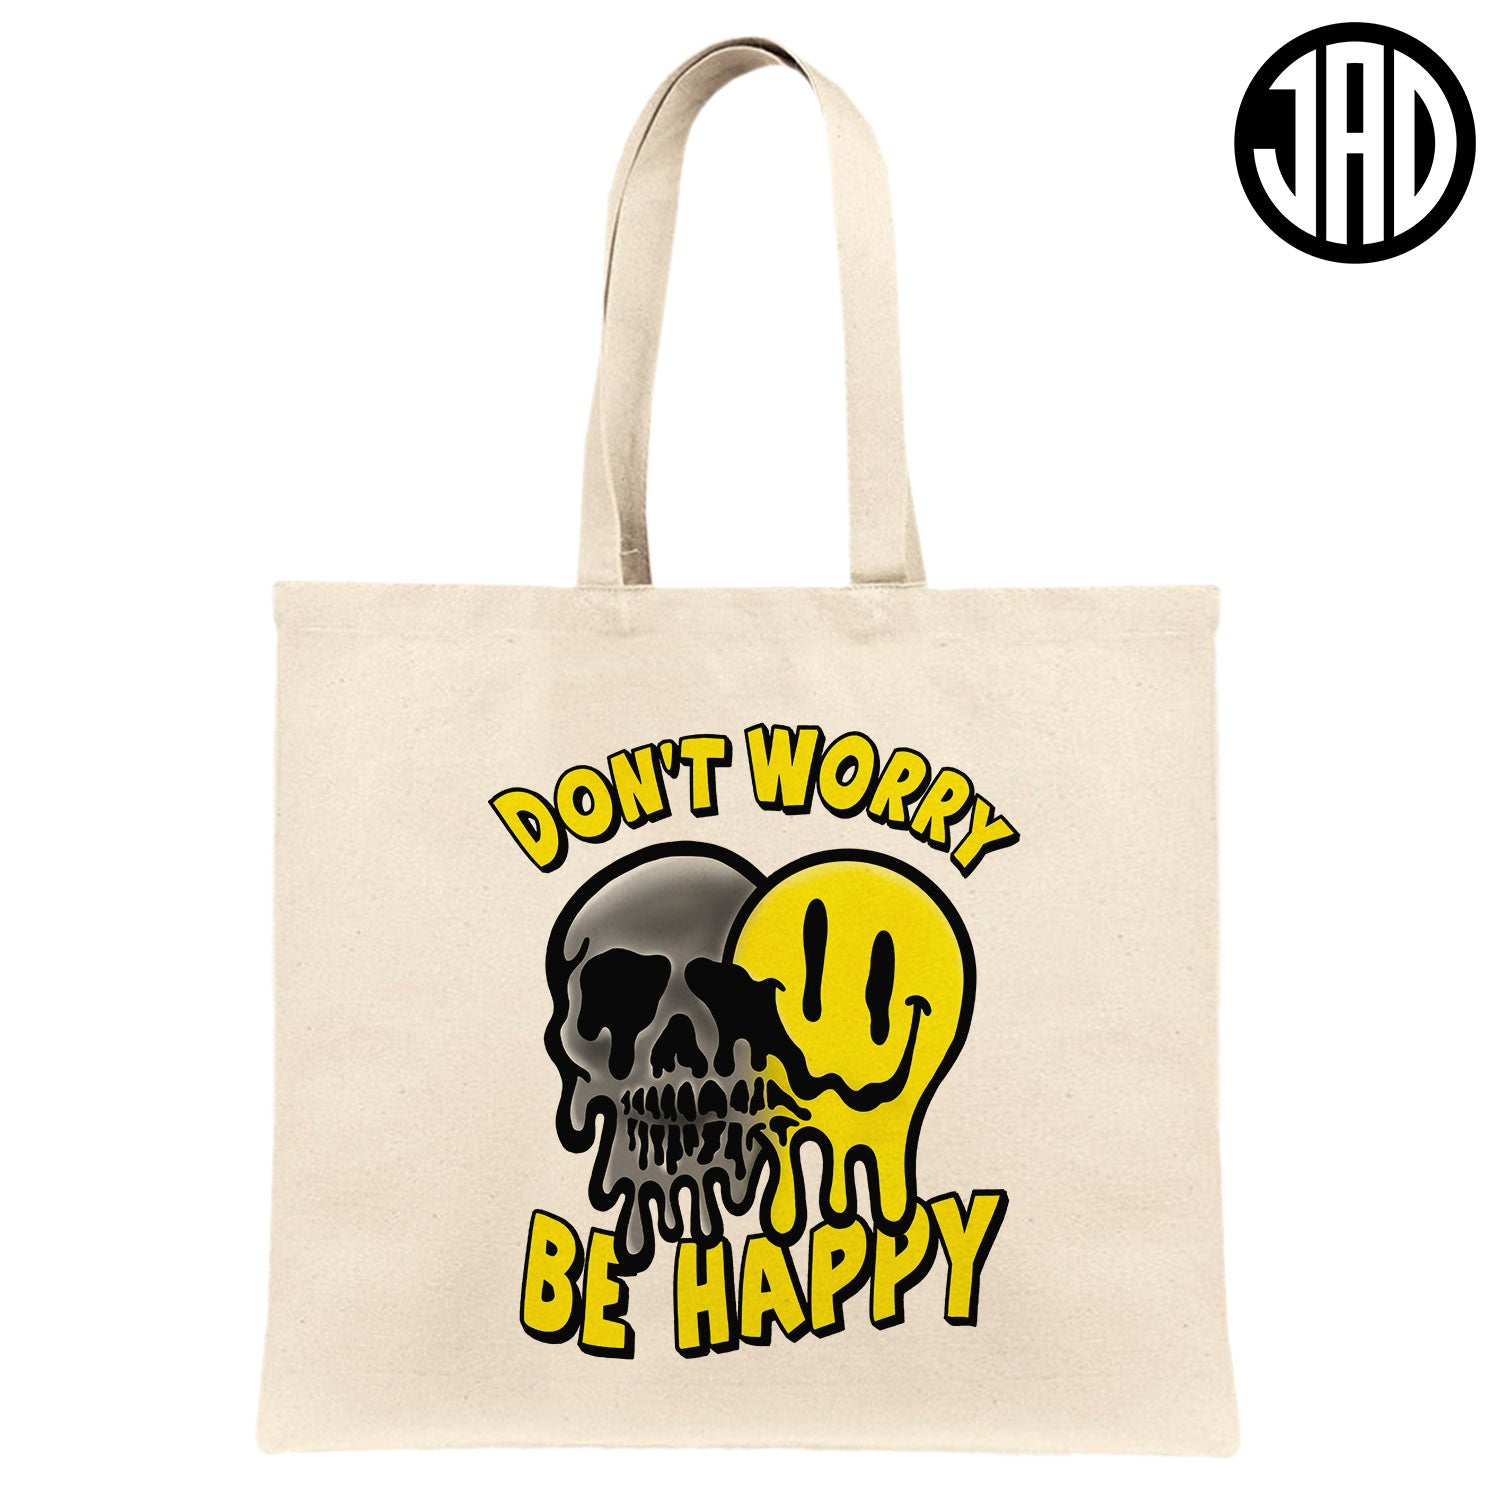 Don't Worry - Canvas Tote Bag